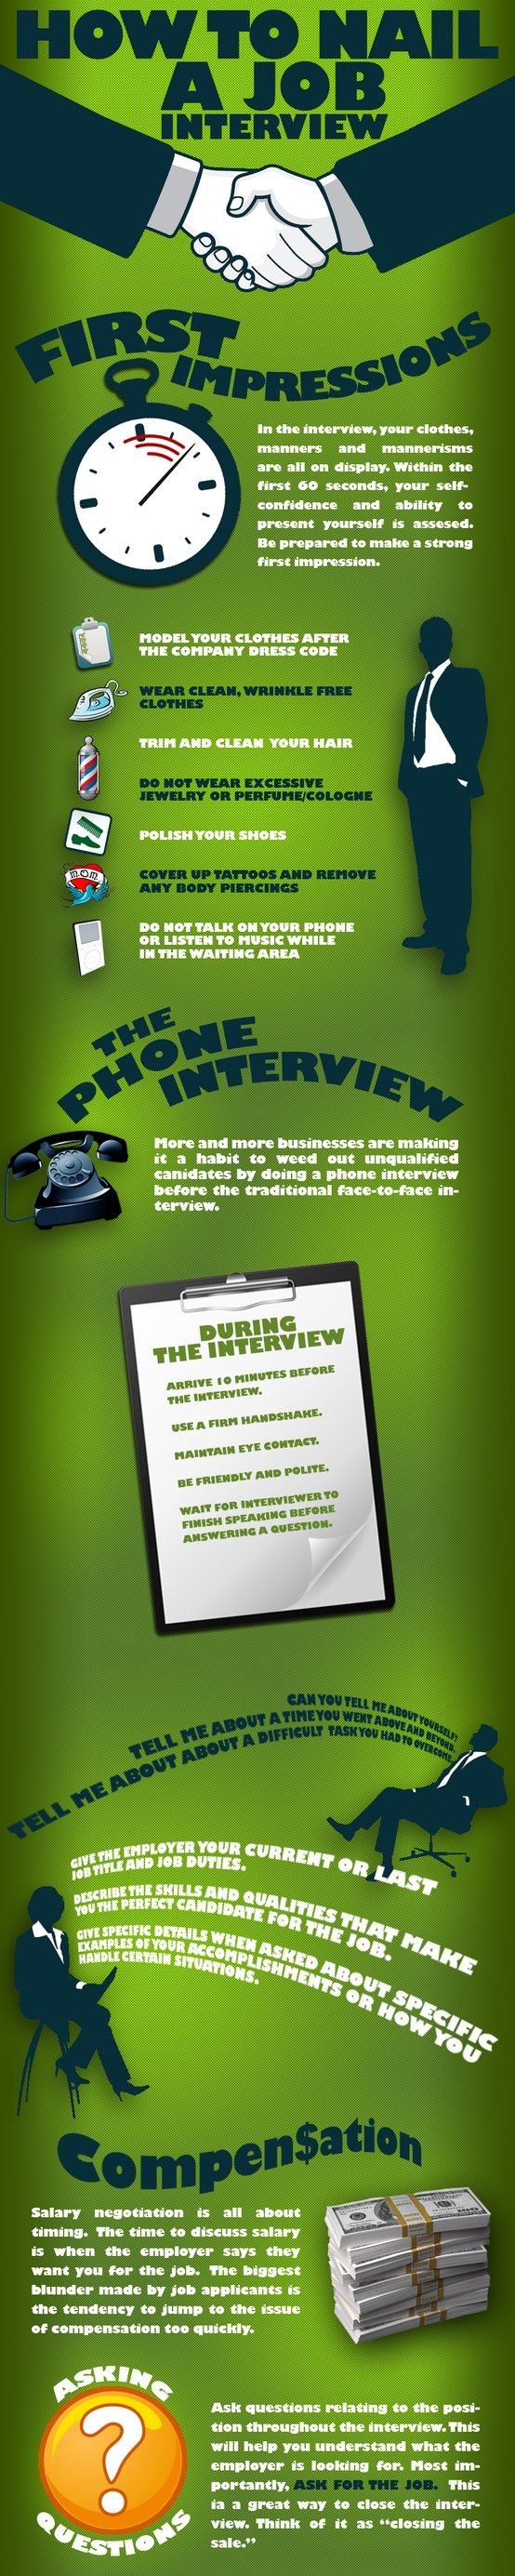 How To Nail A Job Interview #career #jobinterview @profiliacv @cvmontreal Get your dream job and we will help you travel the world for little to no money http://recruitingforgood.com/